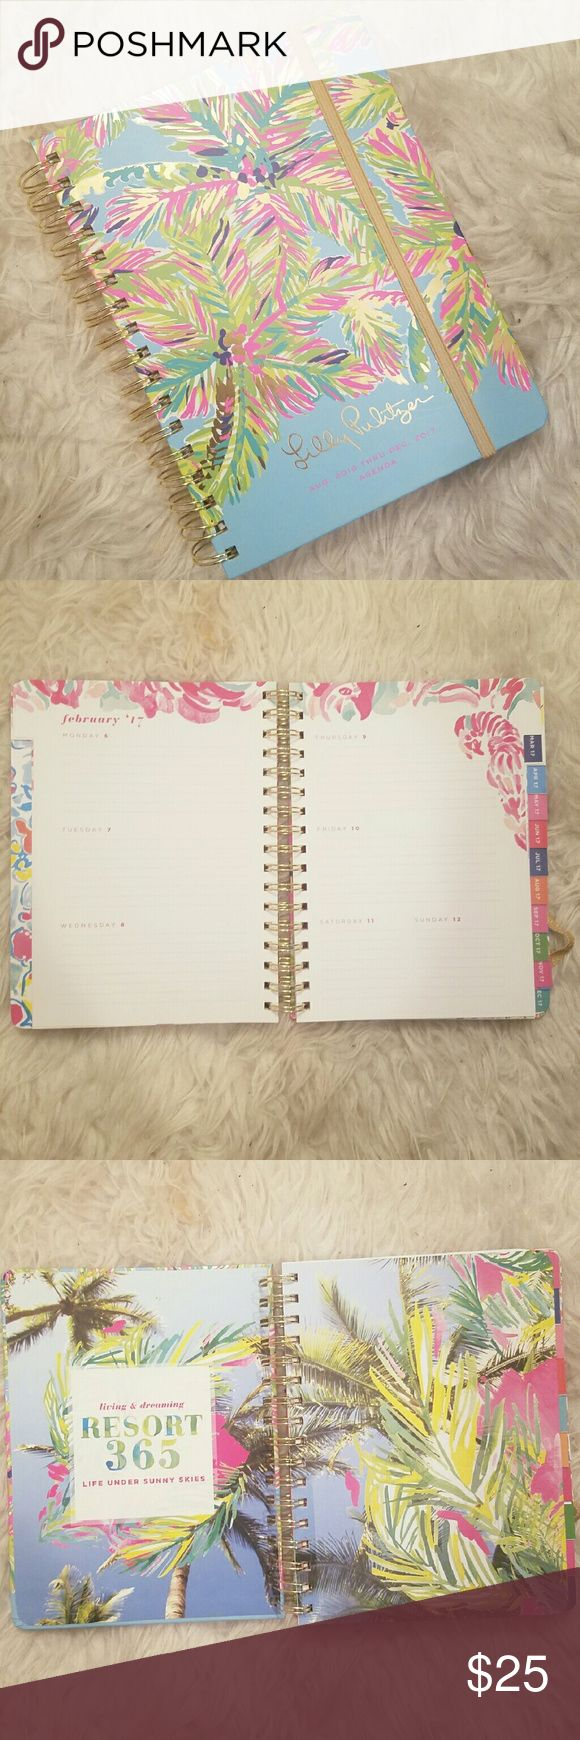 """Lilly Pulitzer 17-Month Large Agenda Brand new, never used Lily Pulitzer 17-Month Large Agenda featured in the """"In the Bungalow"""" design August 2016 through December 2017  Stay organized and chic with a colorful spiral-bound agenda that features yearly, monthly, and weekly calender overviews and day by day space for jotting detailed notes, a coordinating sticker sheet, and extra blank spaces. 6 3/4"""" x 9""""  A matching key ring is available to bundle Lilly Pulitzer Other"""